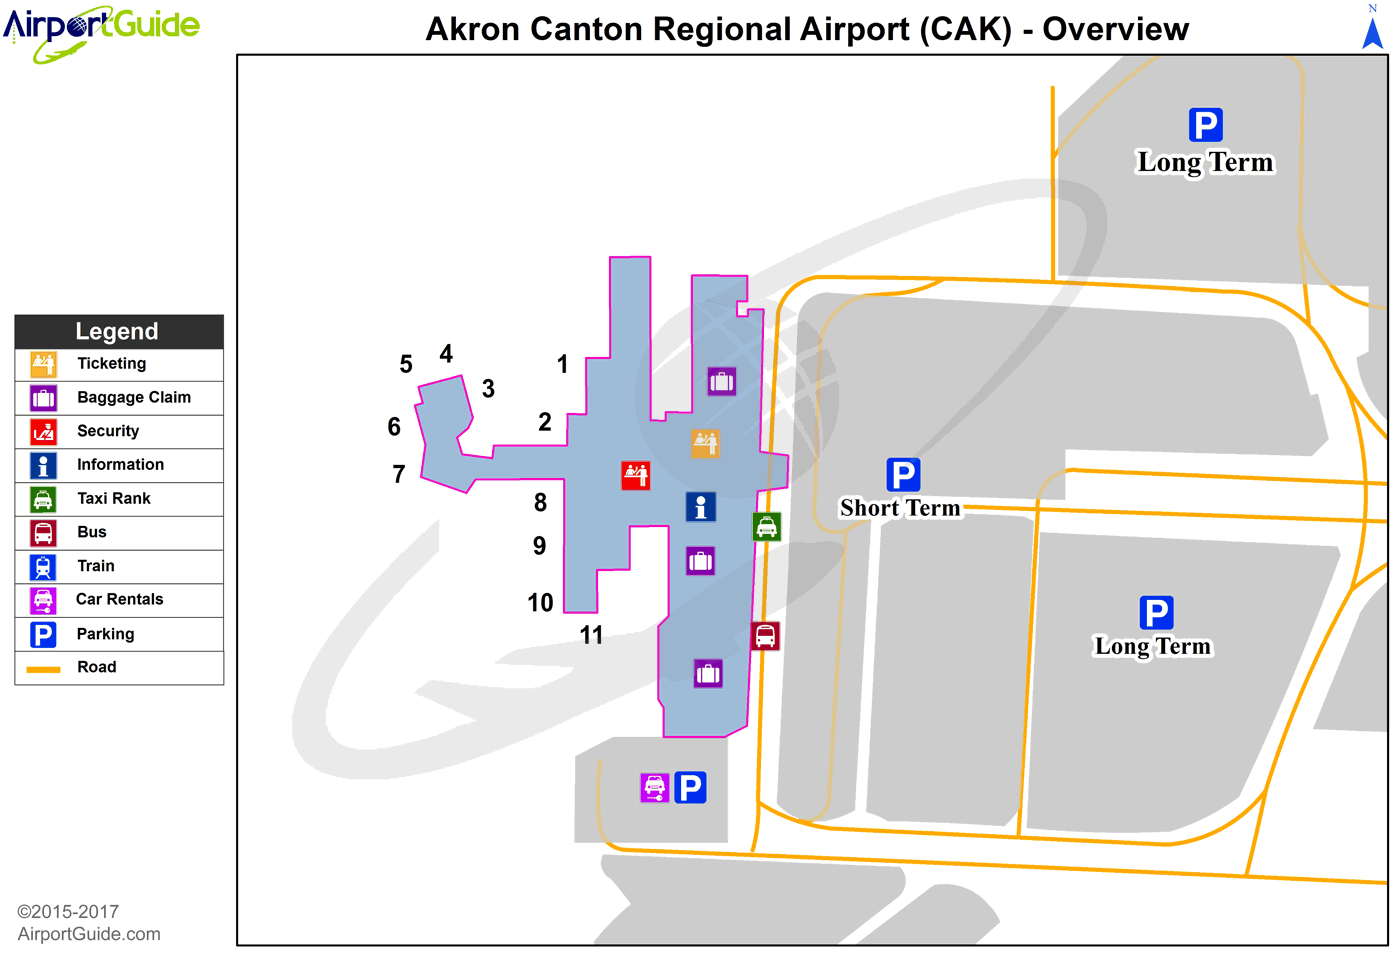 Akron - Akron-Canton Regional (CAK) Airport Terminal Map - Overview